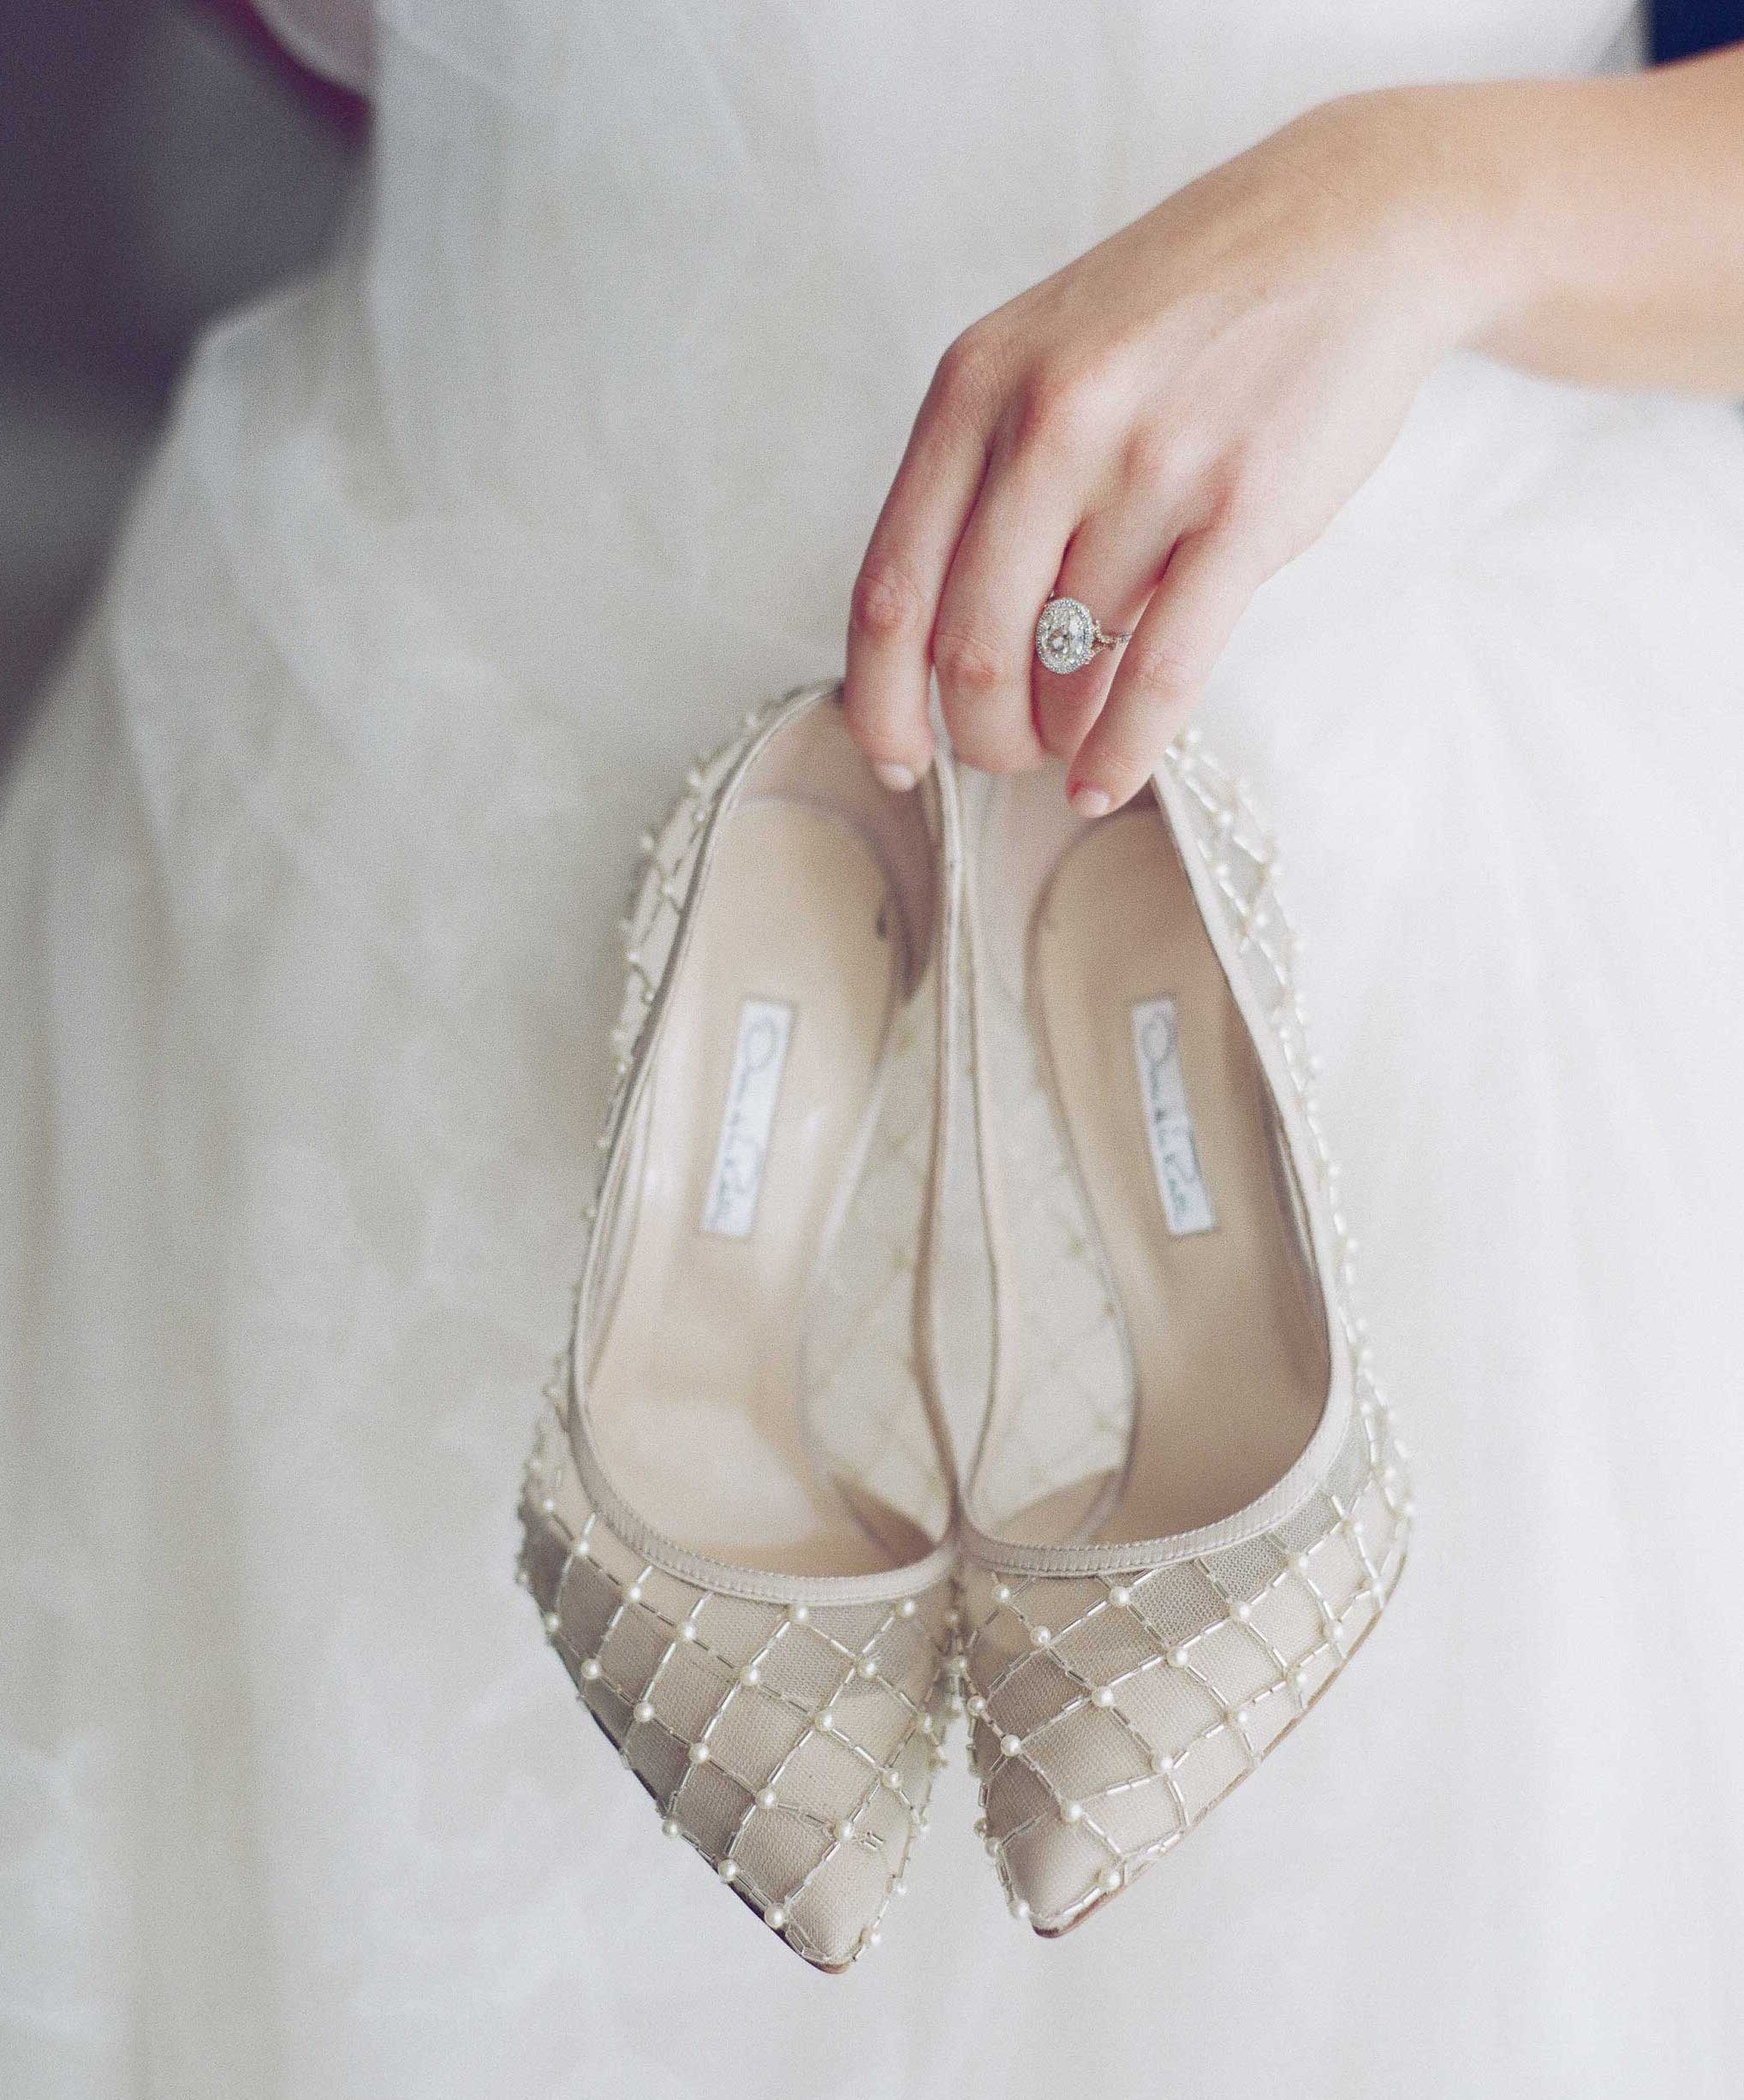 Wedding Shoes: 25 Stylish Heels Worn by Real Brides - Inside Weddings